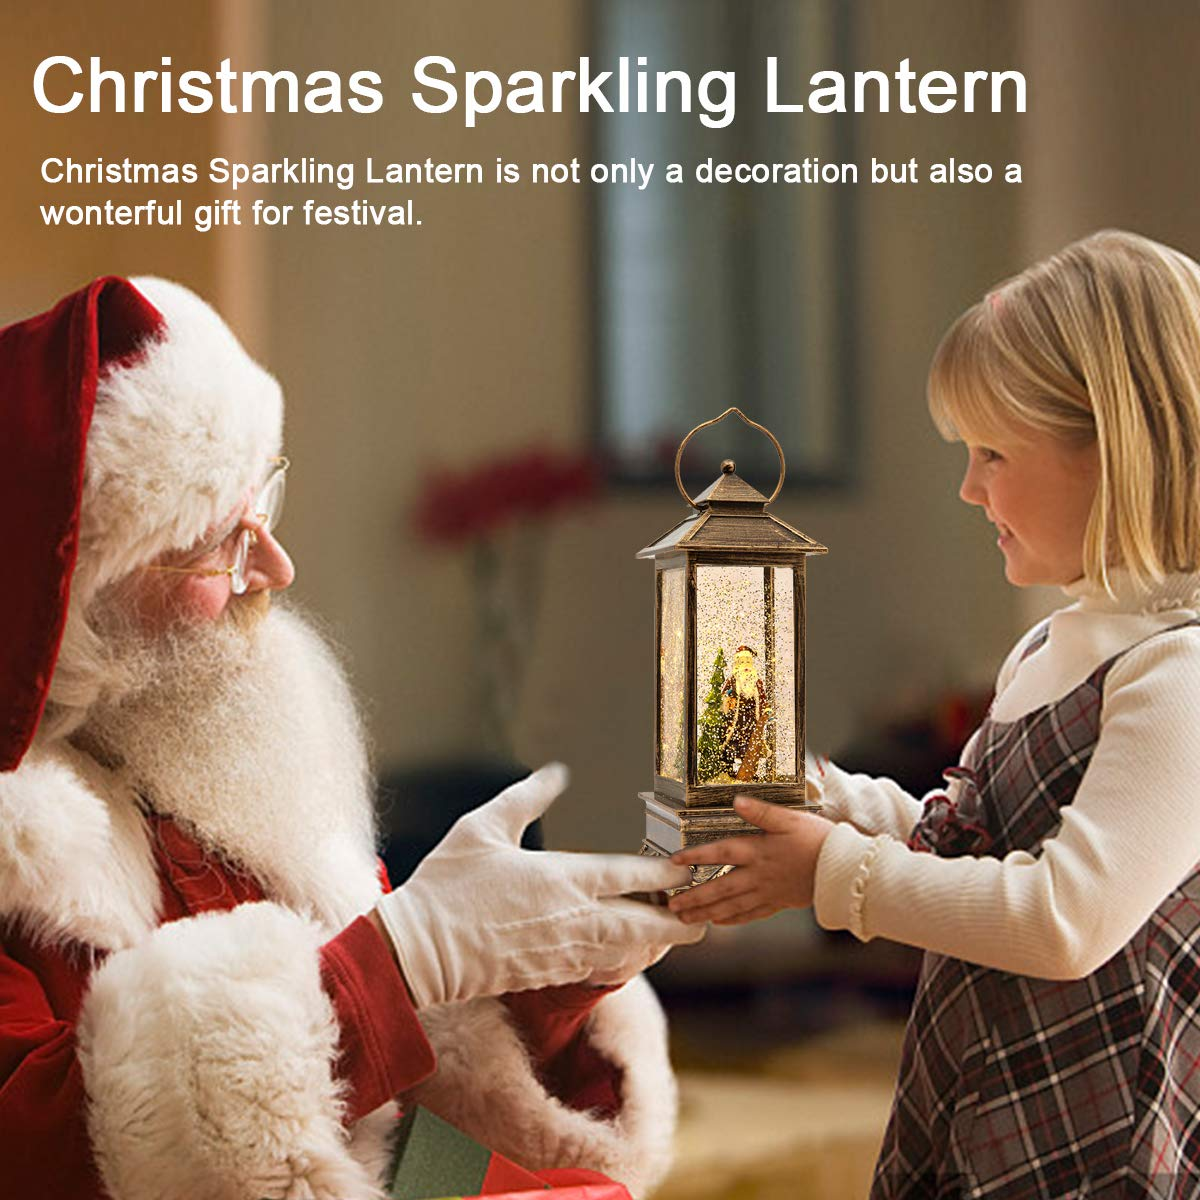 Christmas Lighted Musical Jesus Christ Nativity Snow Globe Lantern with Swirling Glitter and Battery /& USB Powered Color Light for Home Decoration Holder Lantern Christmas Gift